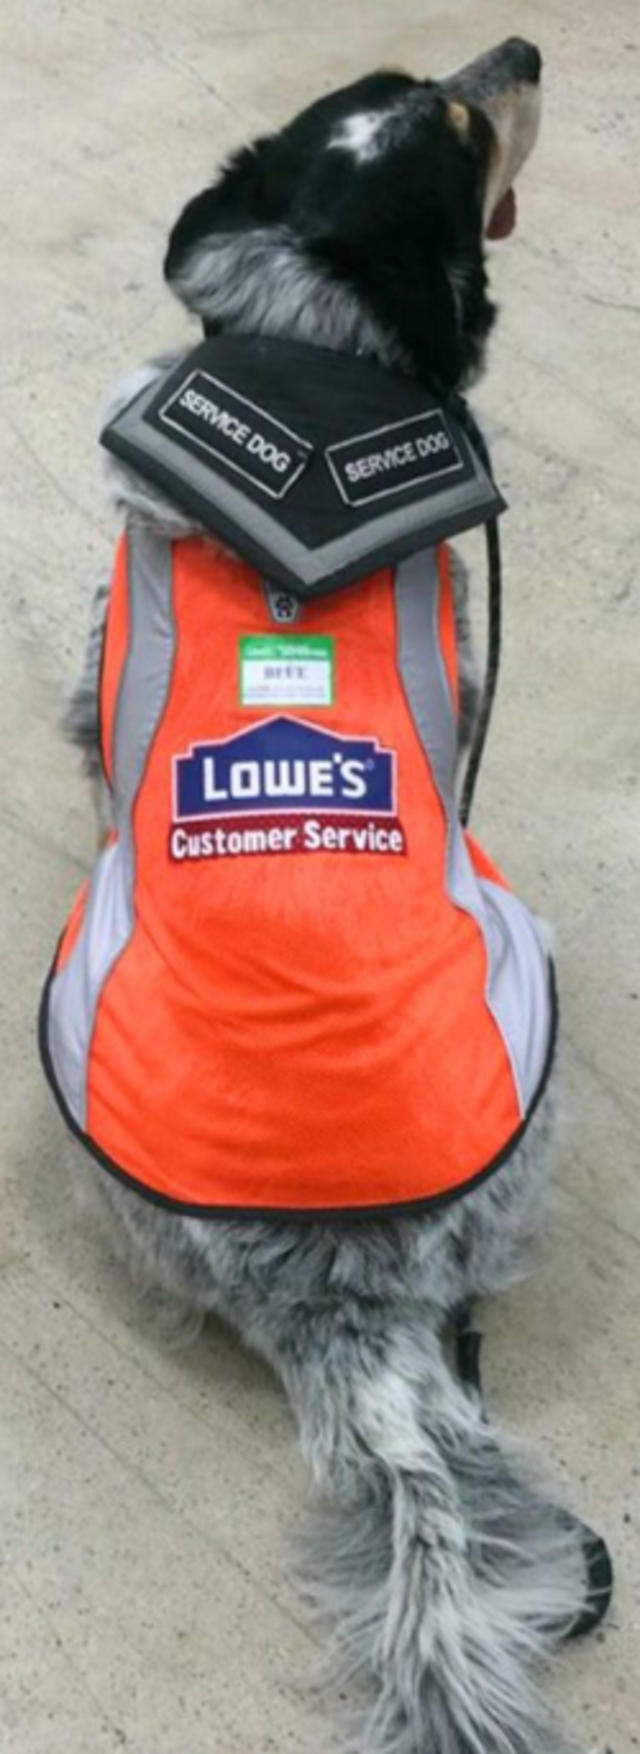 Man with brain injury cries tears of joy after Lowe's store gives